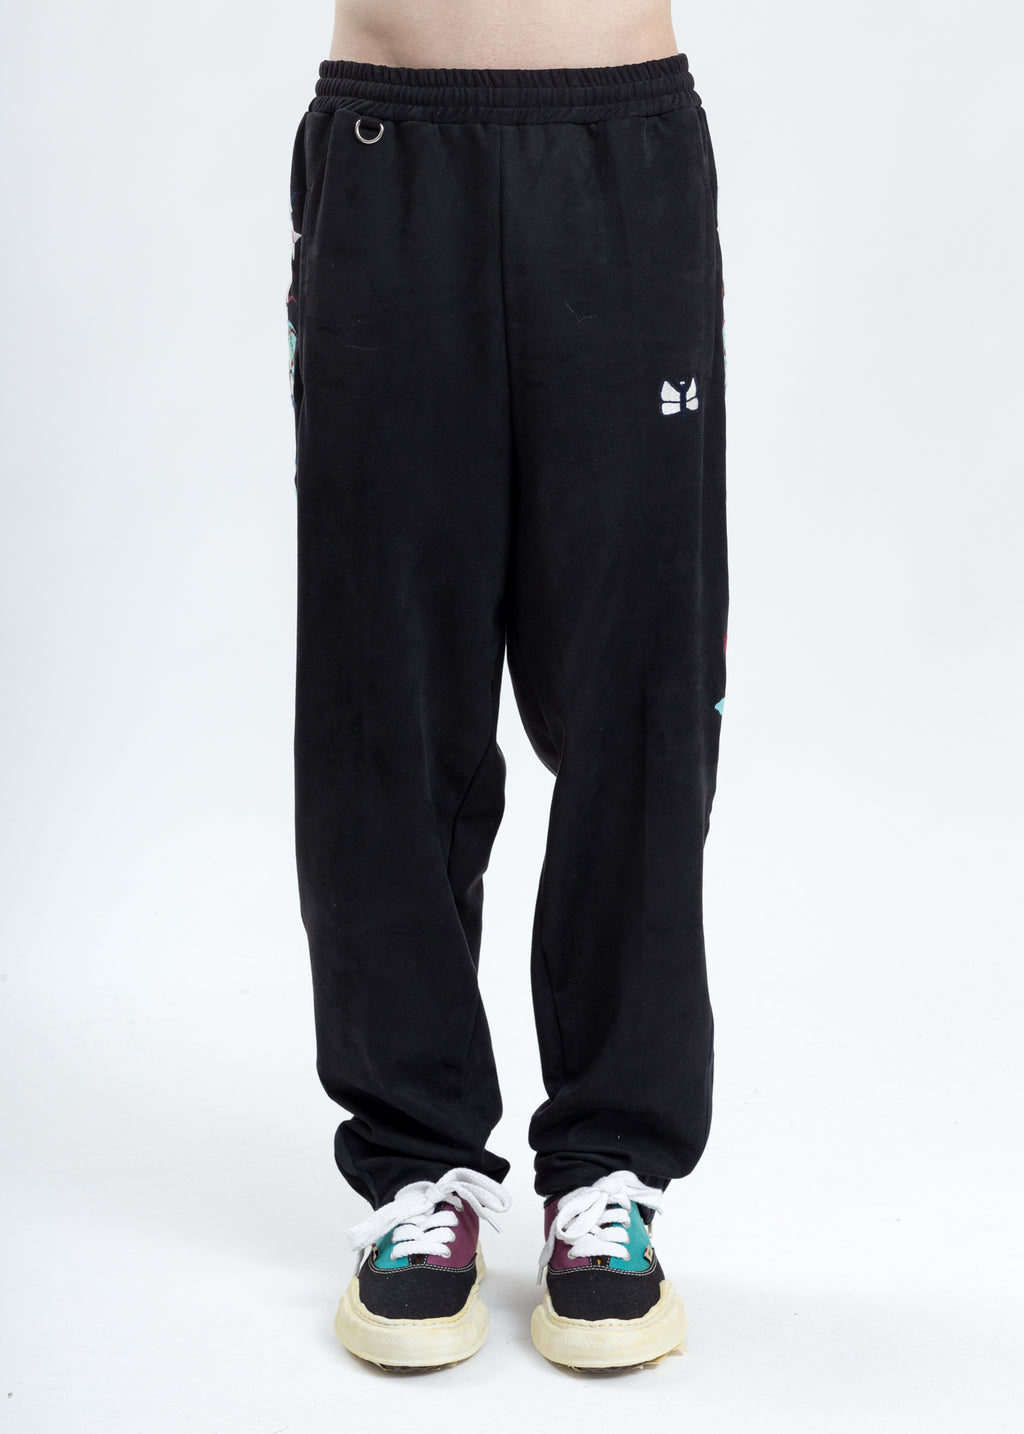 Black Chaos Embroidery Suede Track Pants